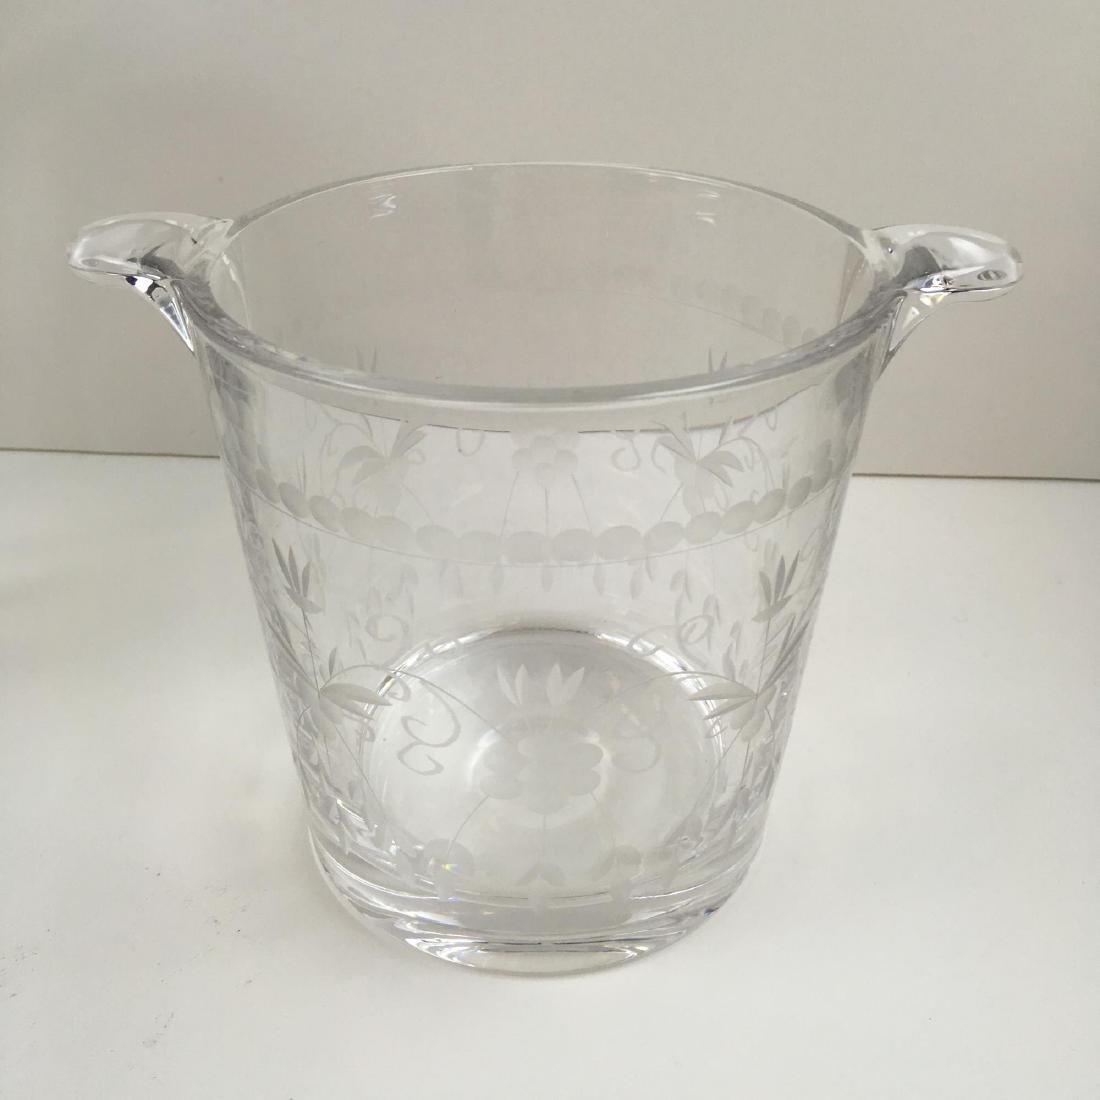 4 PCS - ICE BUCKETS, VASE AND DECANTER - 6